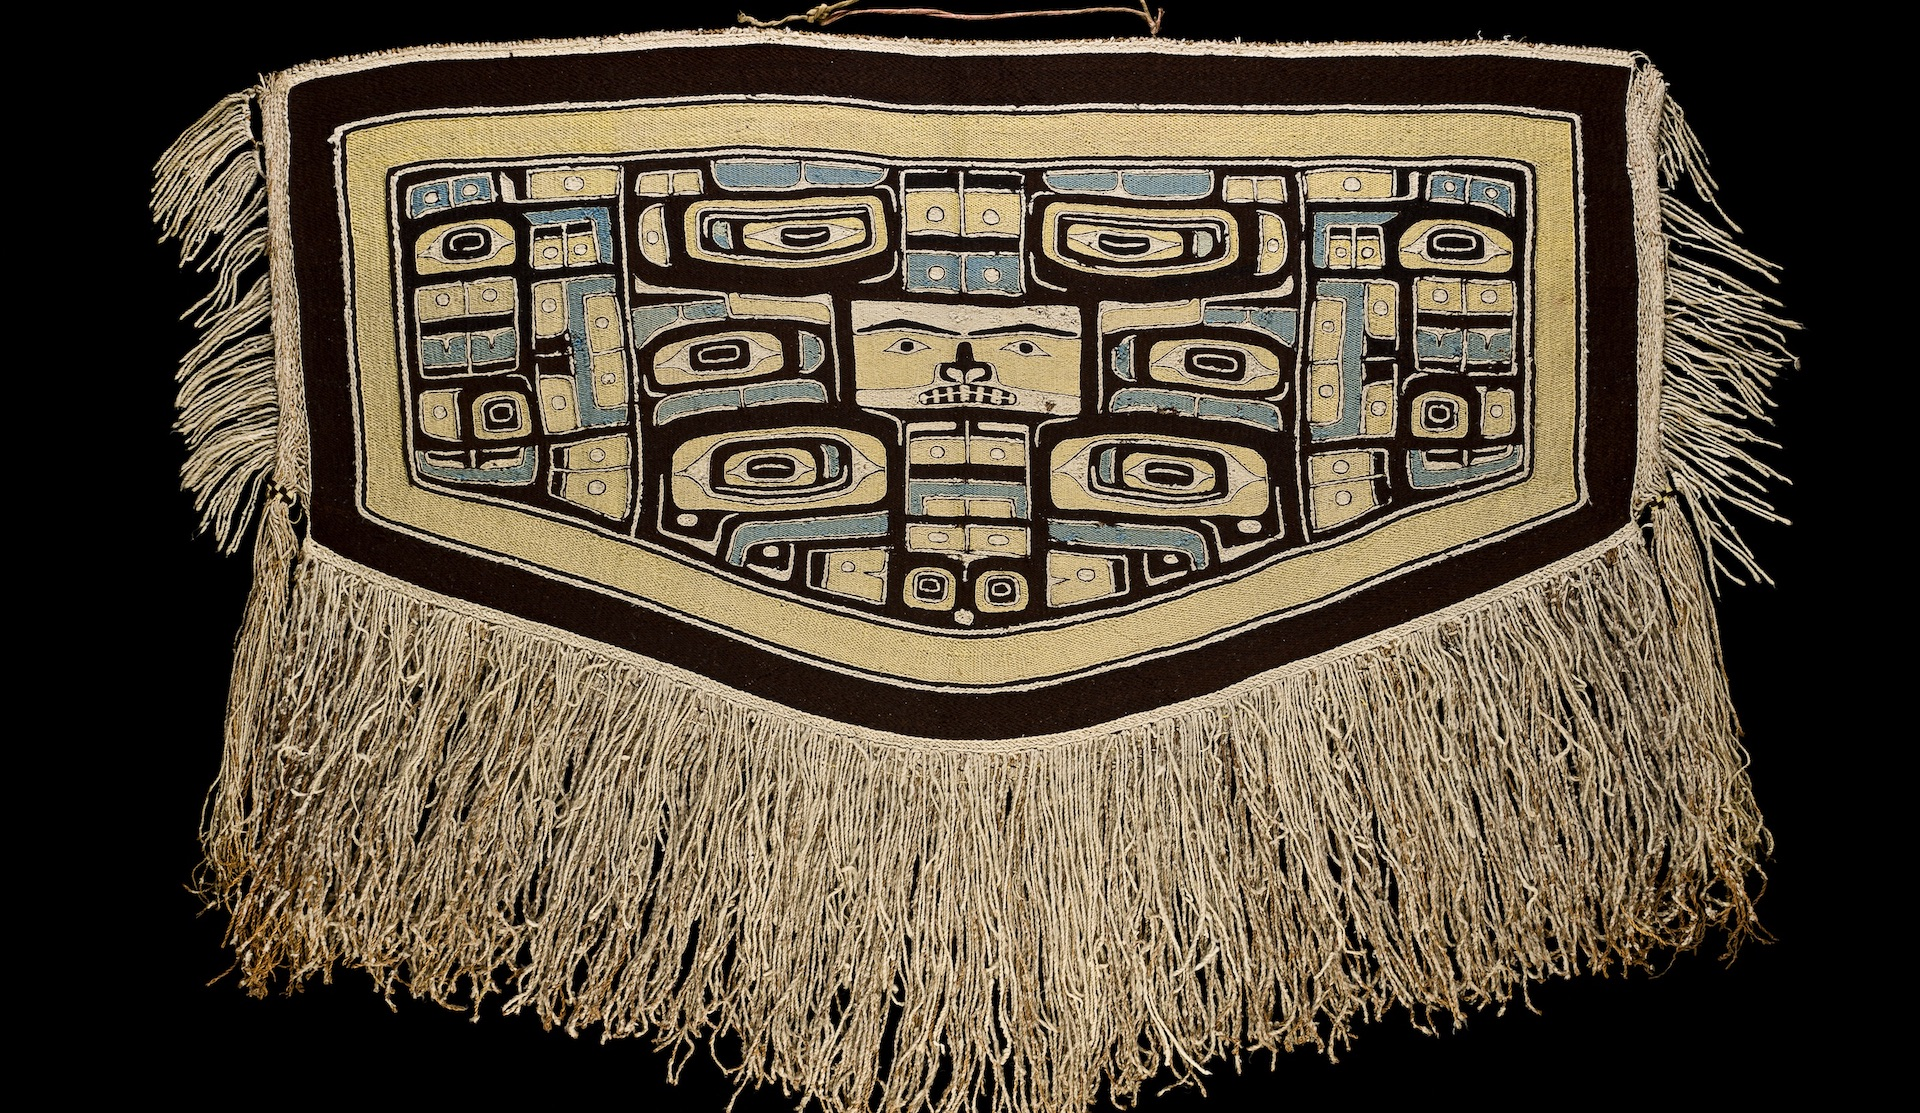 large Chilkat style ceremonial robe featuring formline designs